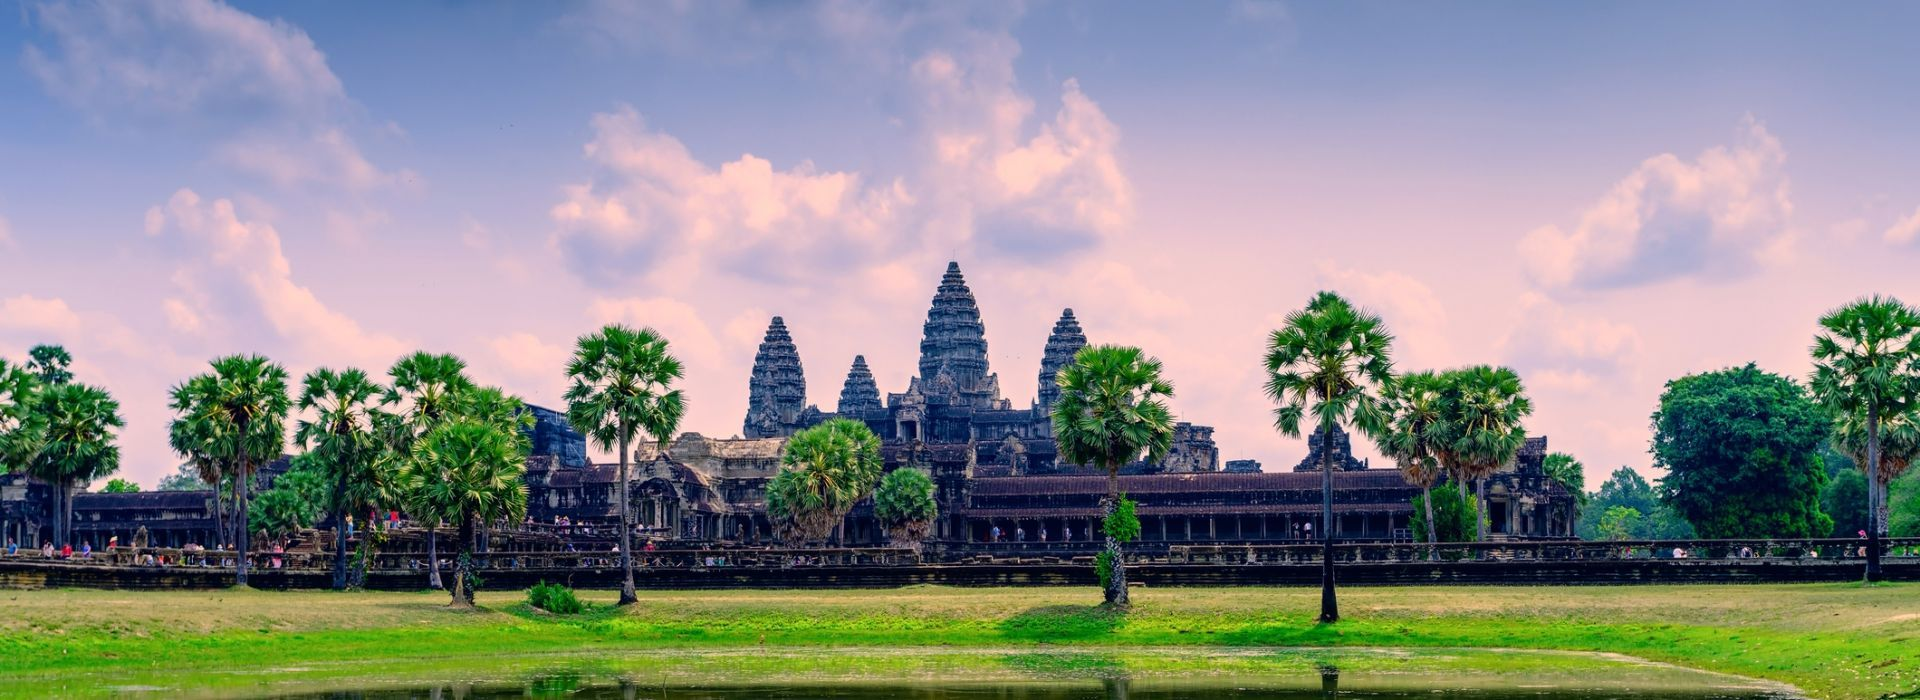 Concerts and shows Tours in Siem Reap